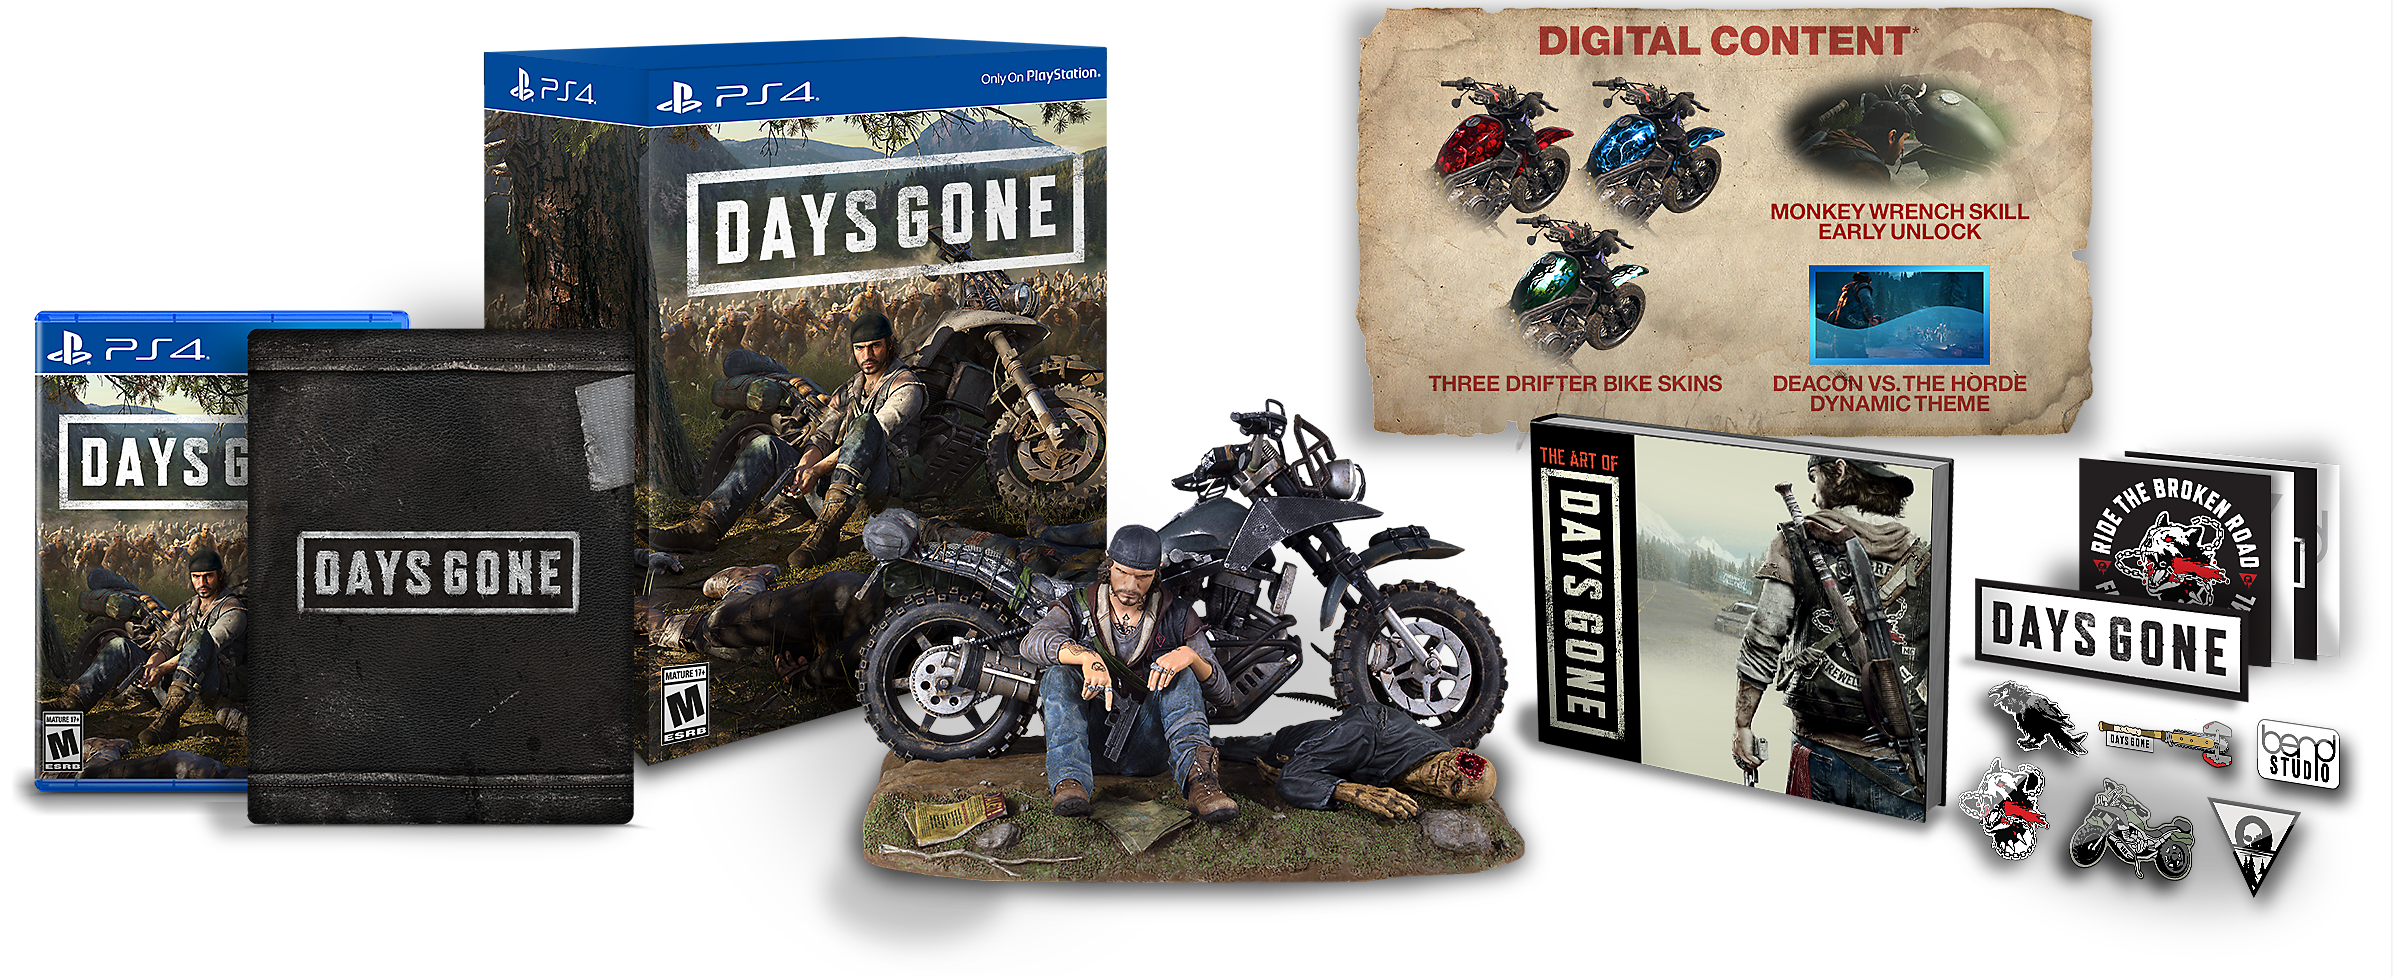 Days Gone Collector's Edition Boxes and Statue